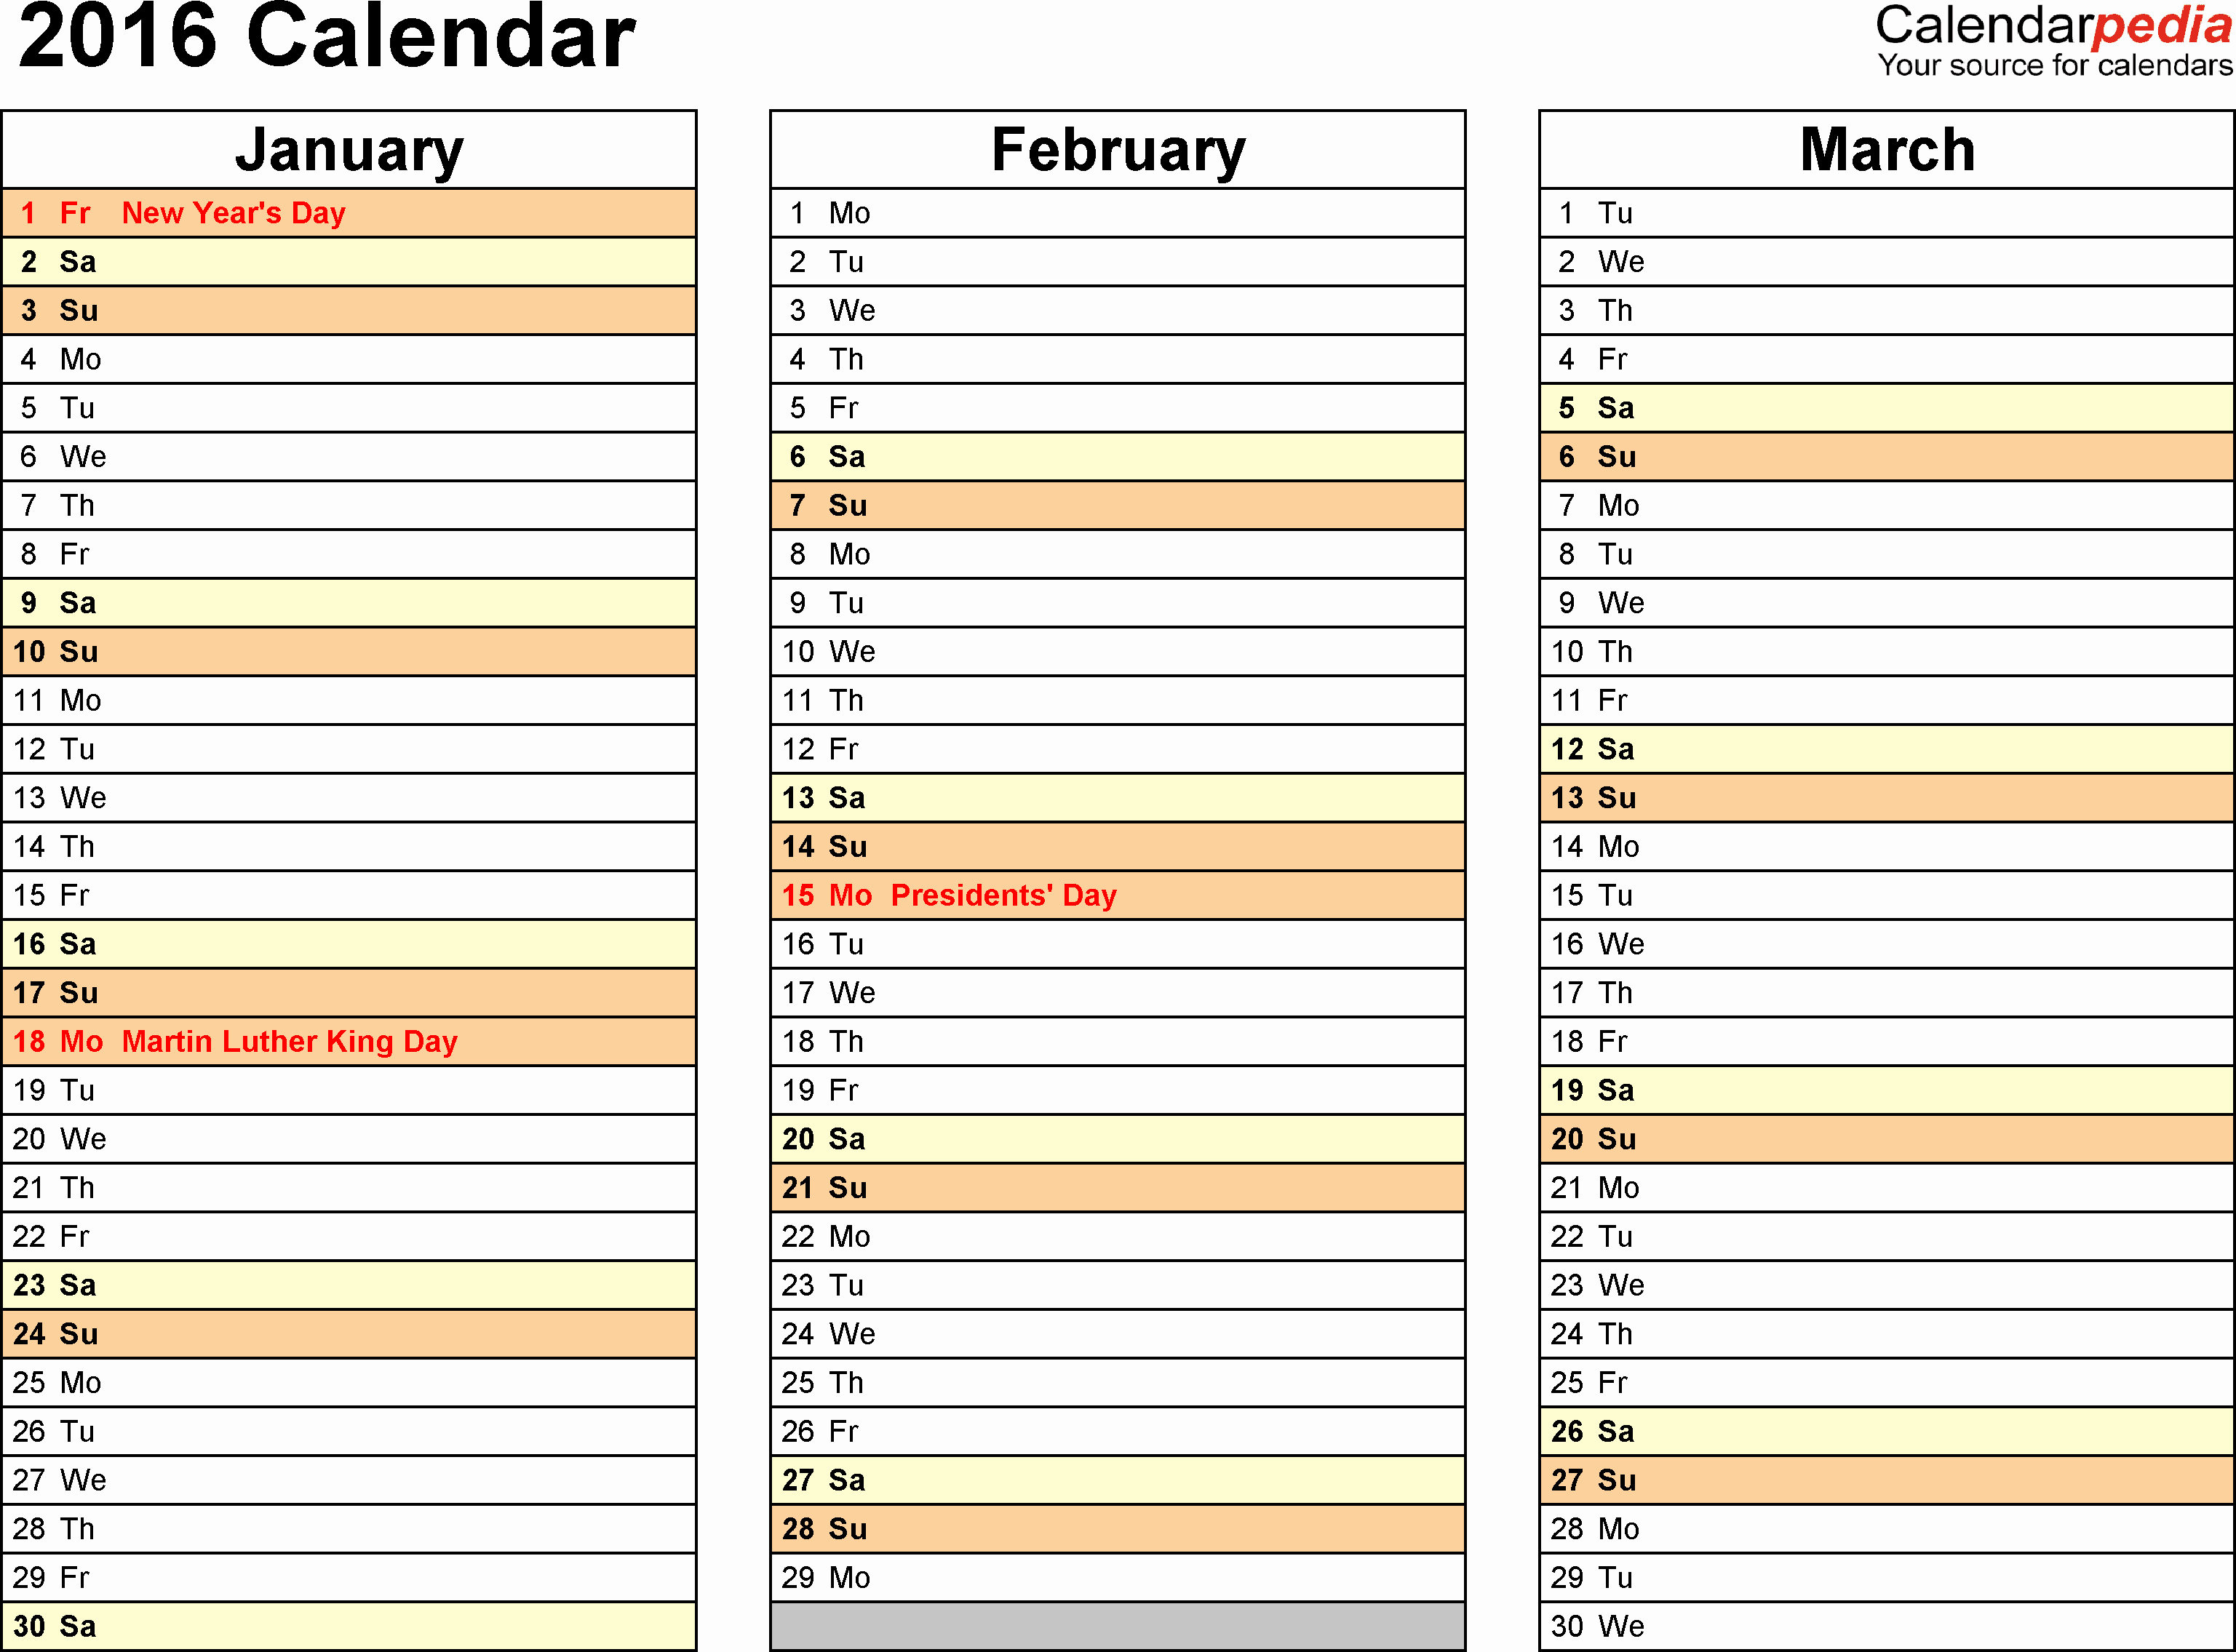 3 Month 2016 Calendar Printable Free for Word